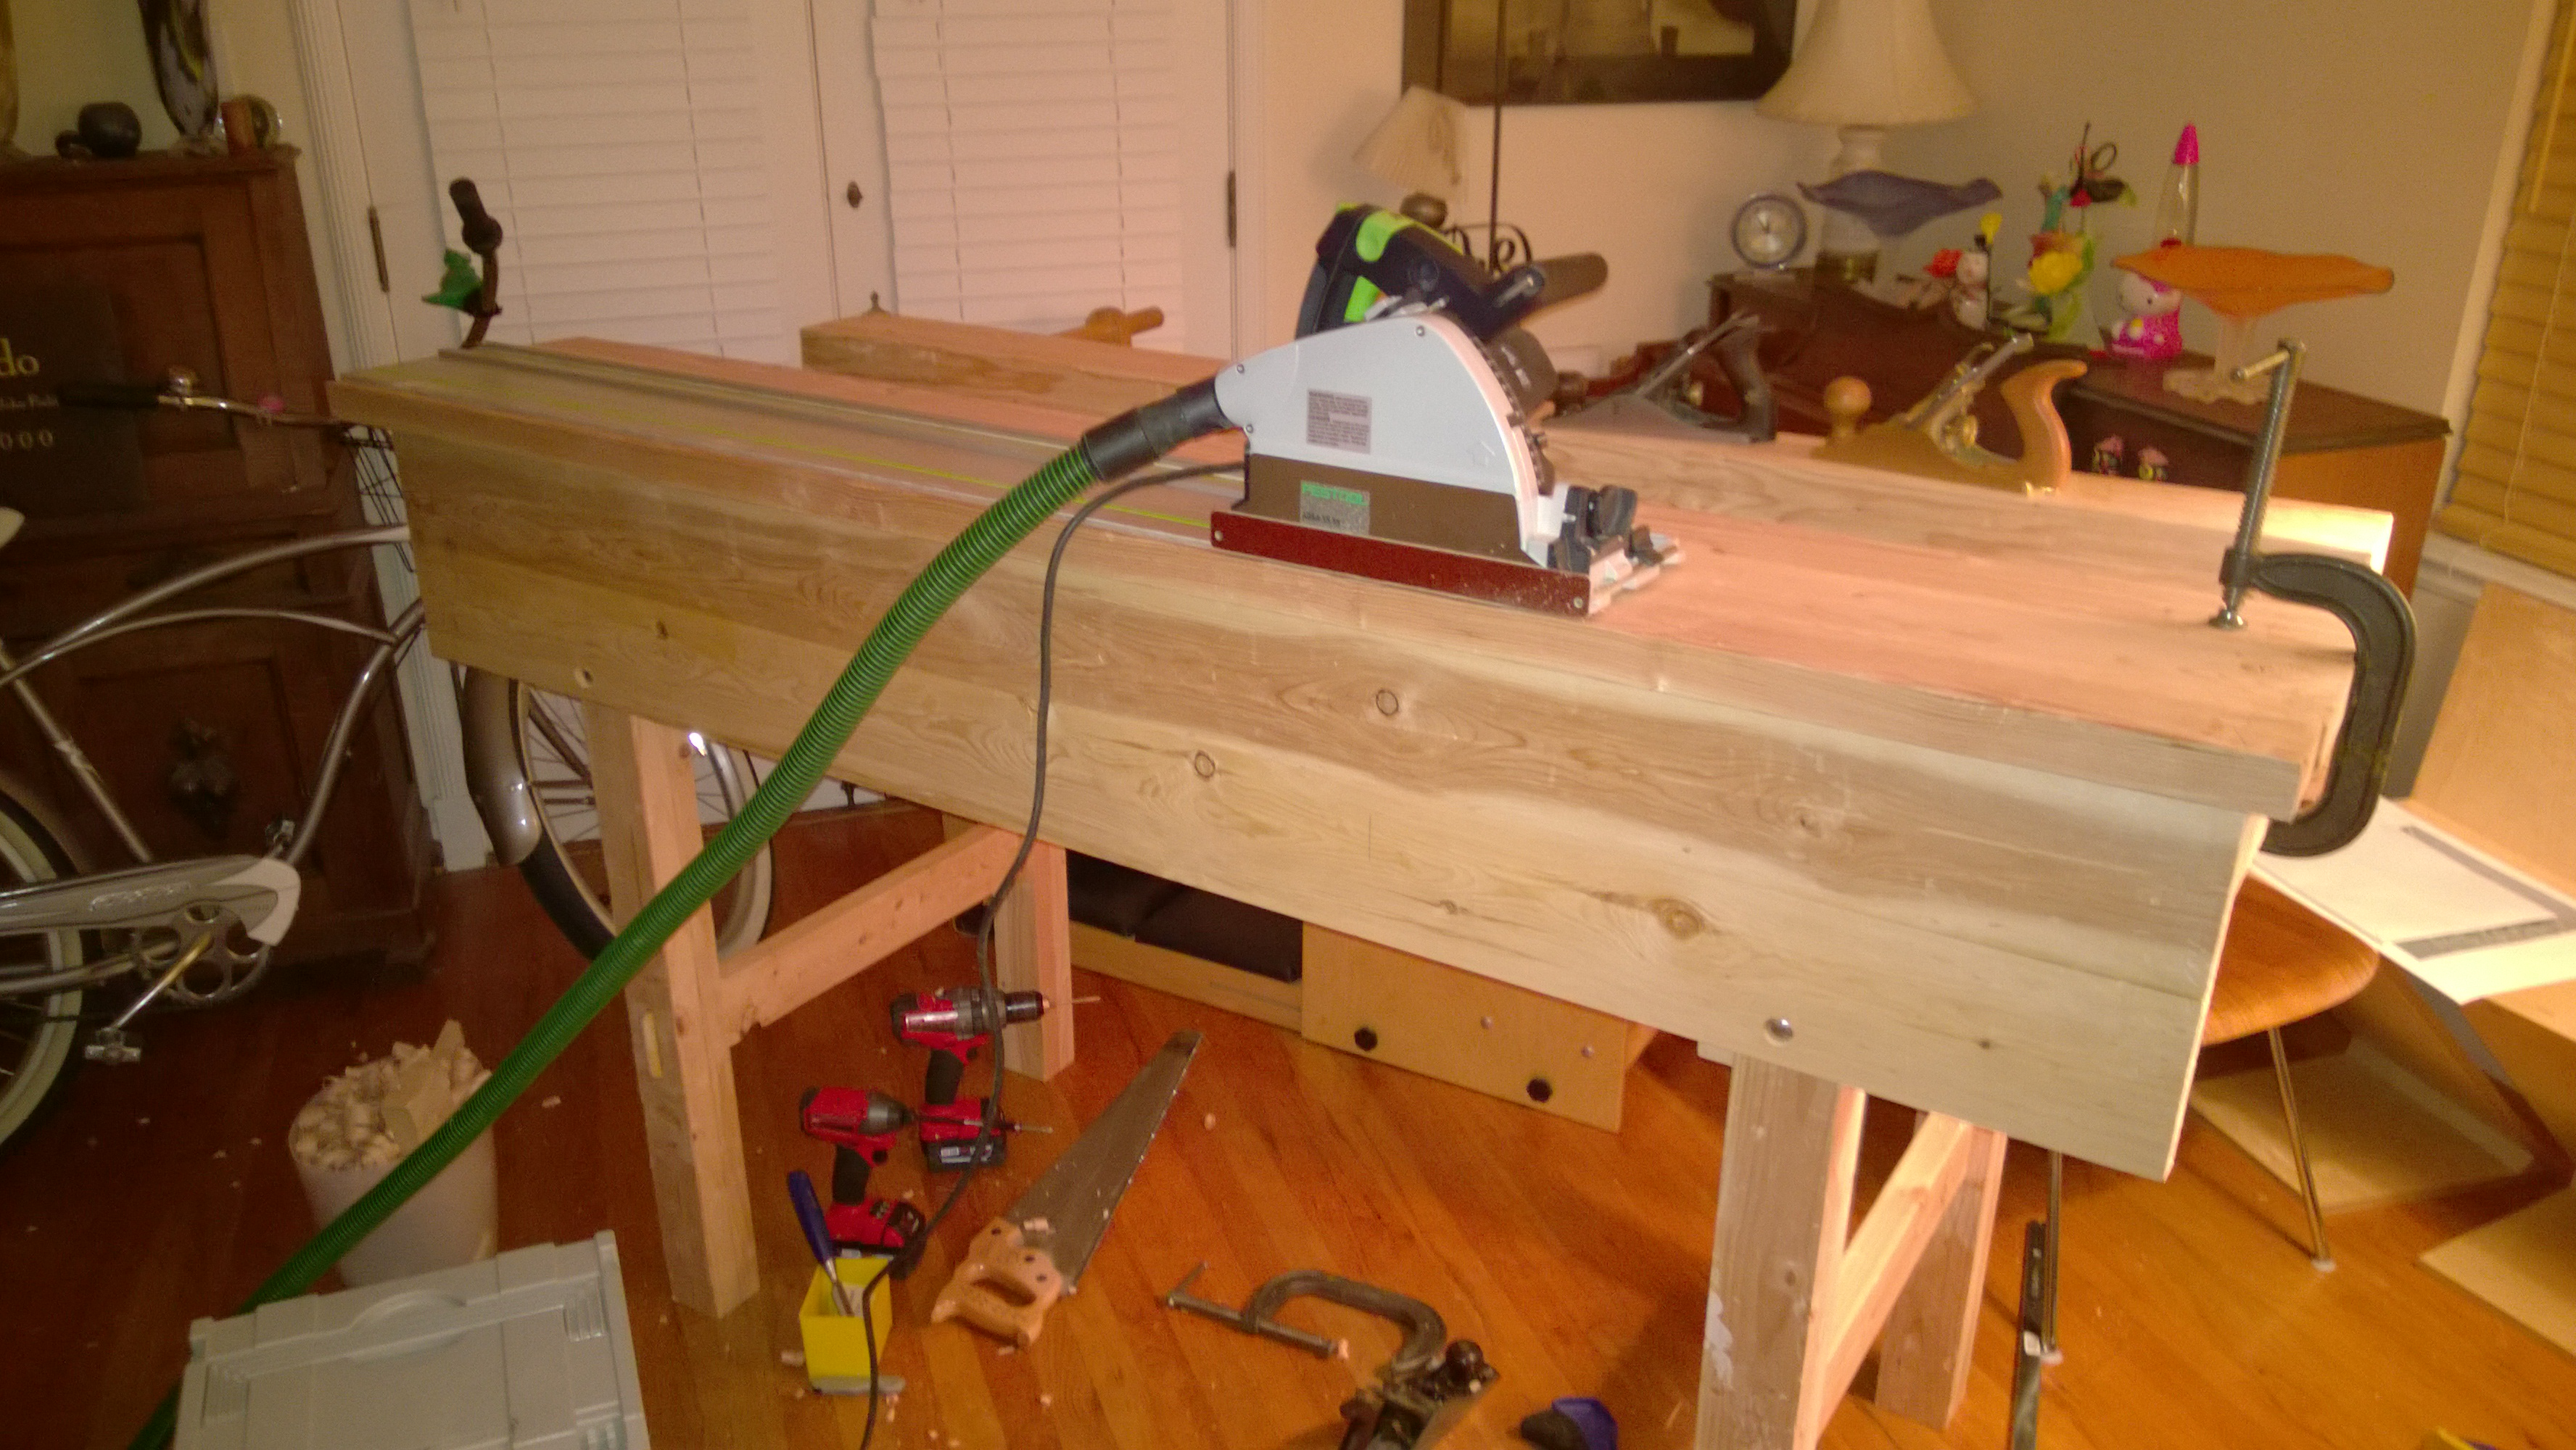 Phenomenal A Hand Tool Workbench Based Off Of Paul Sellers Plans Onthecornerstone Fun Painted Chair Ideas Images Onthecornerstoneorg